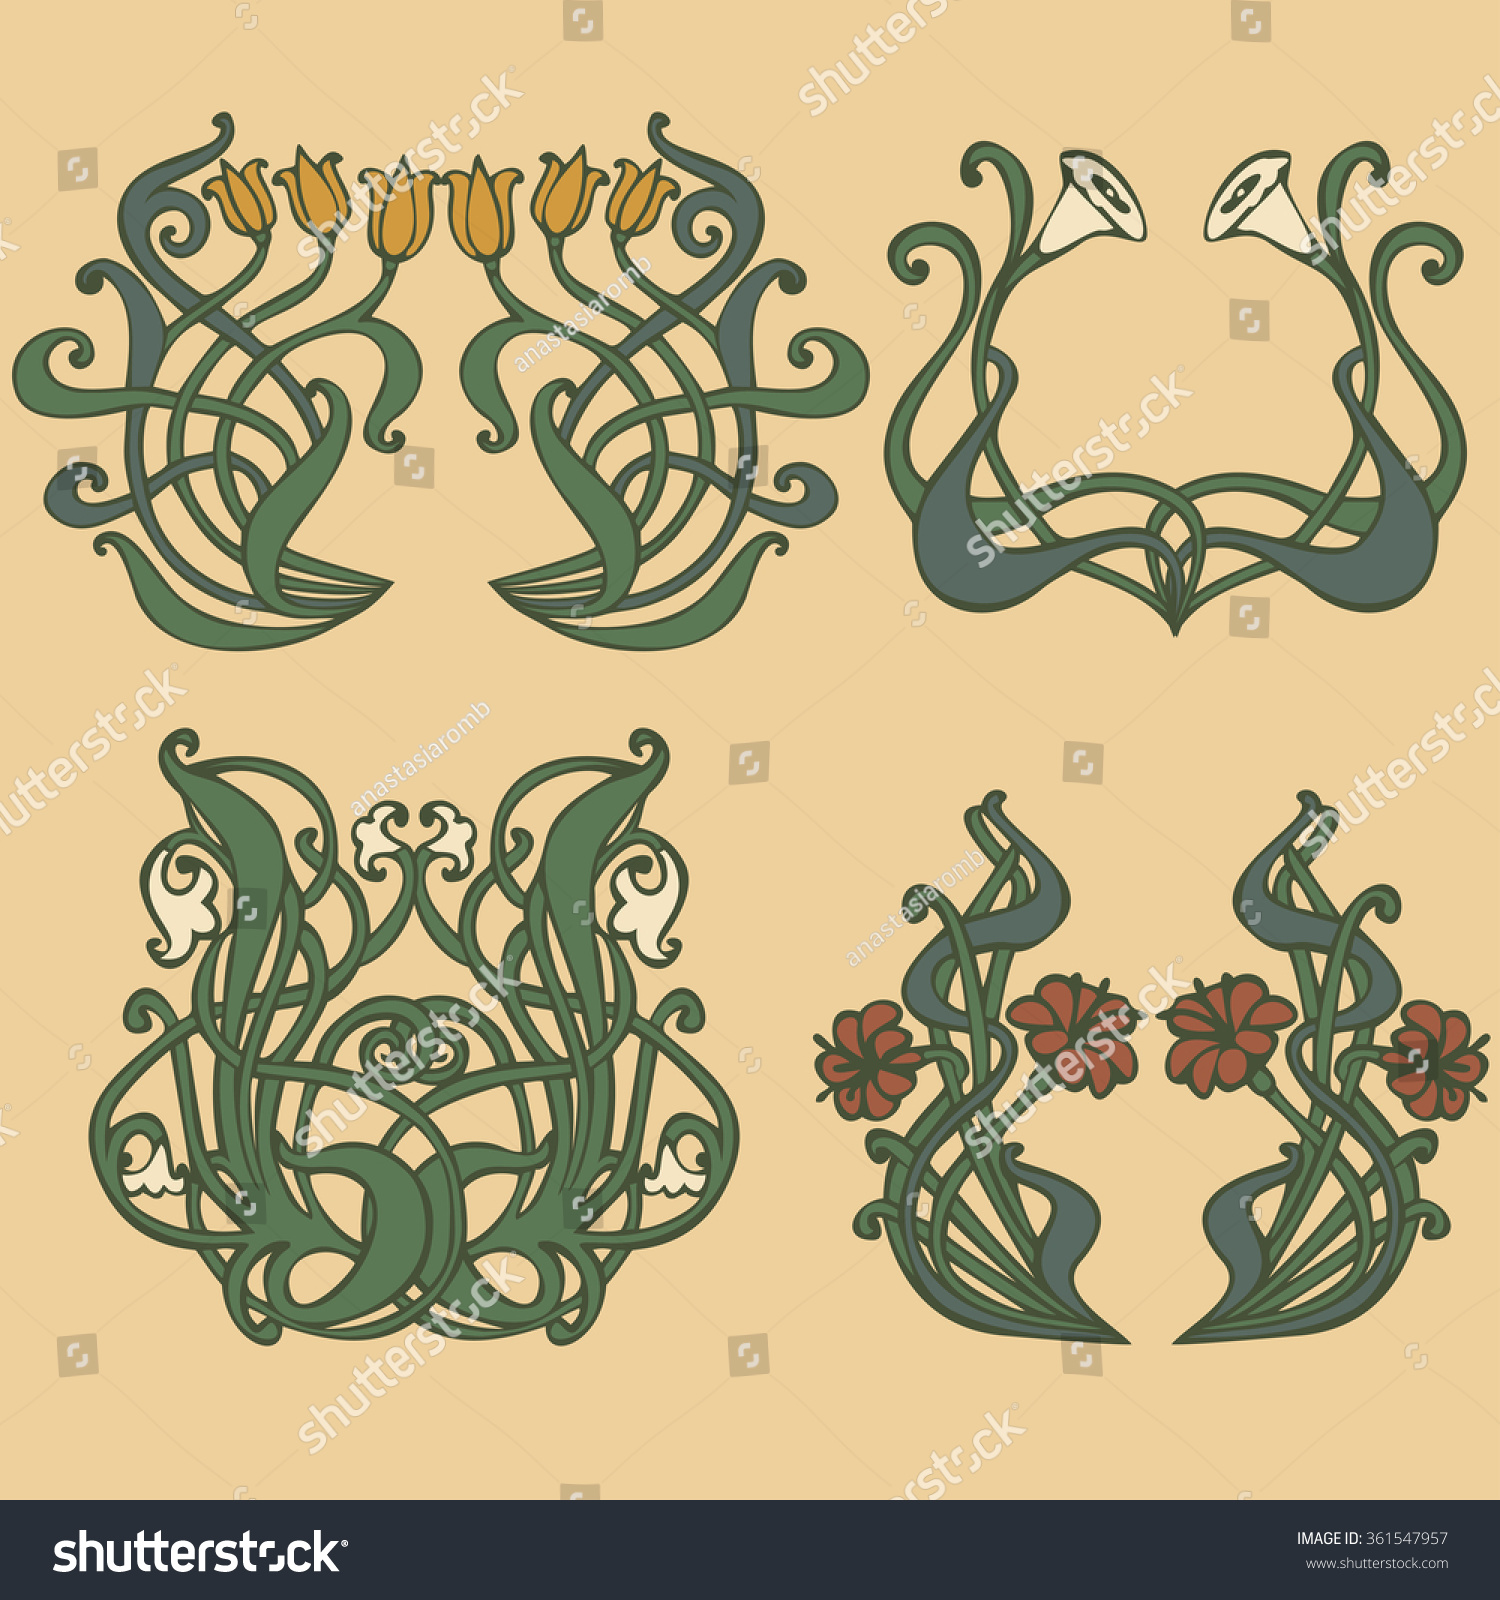 art nouveau art deco floral ornaments stock vector. Black Bedroom Furniture Sets. Home Design Ideas